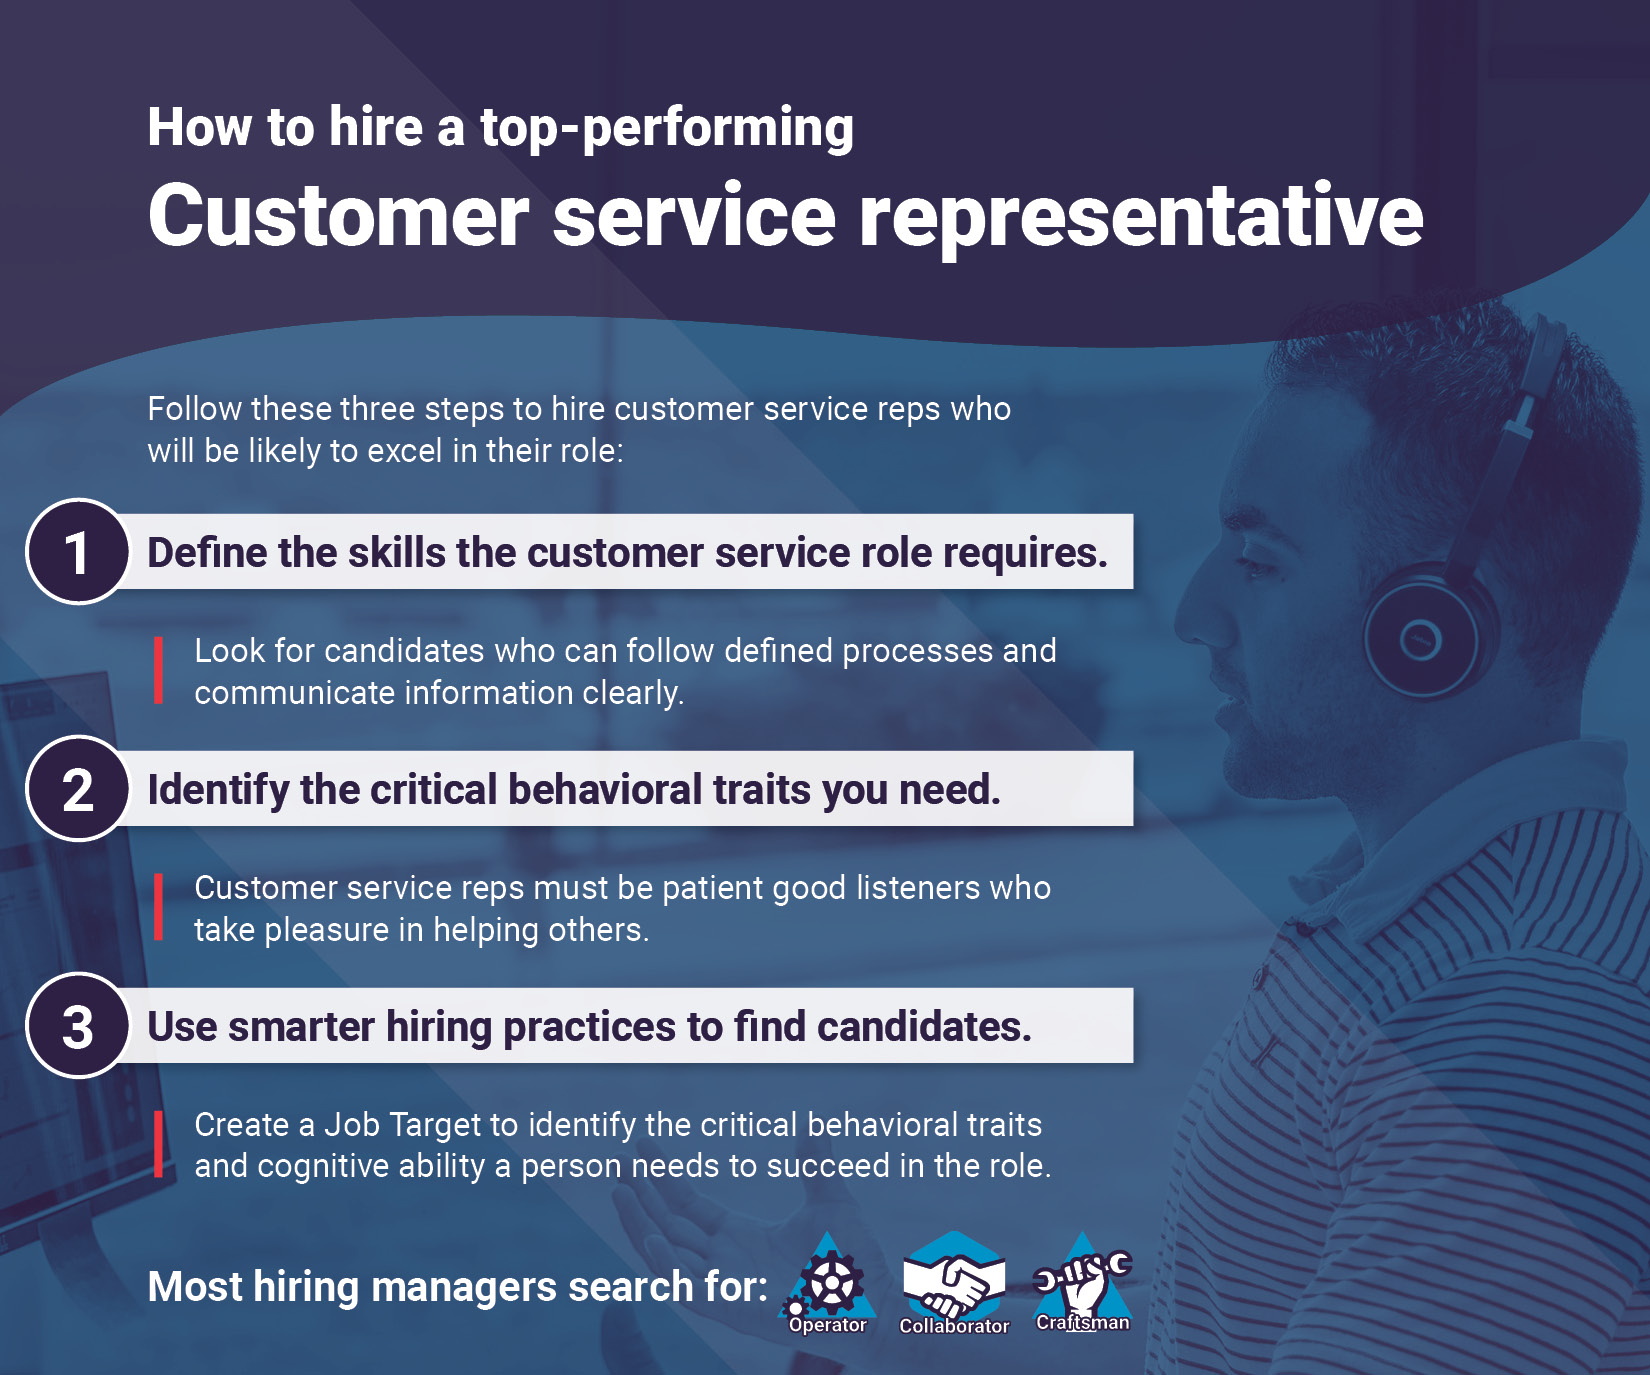 Need to find customer service reps? Follow these guidelines.